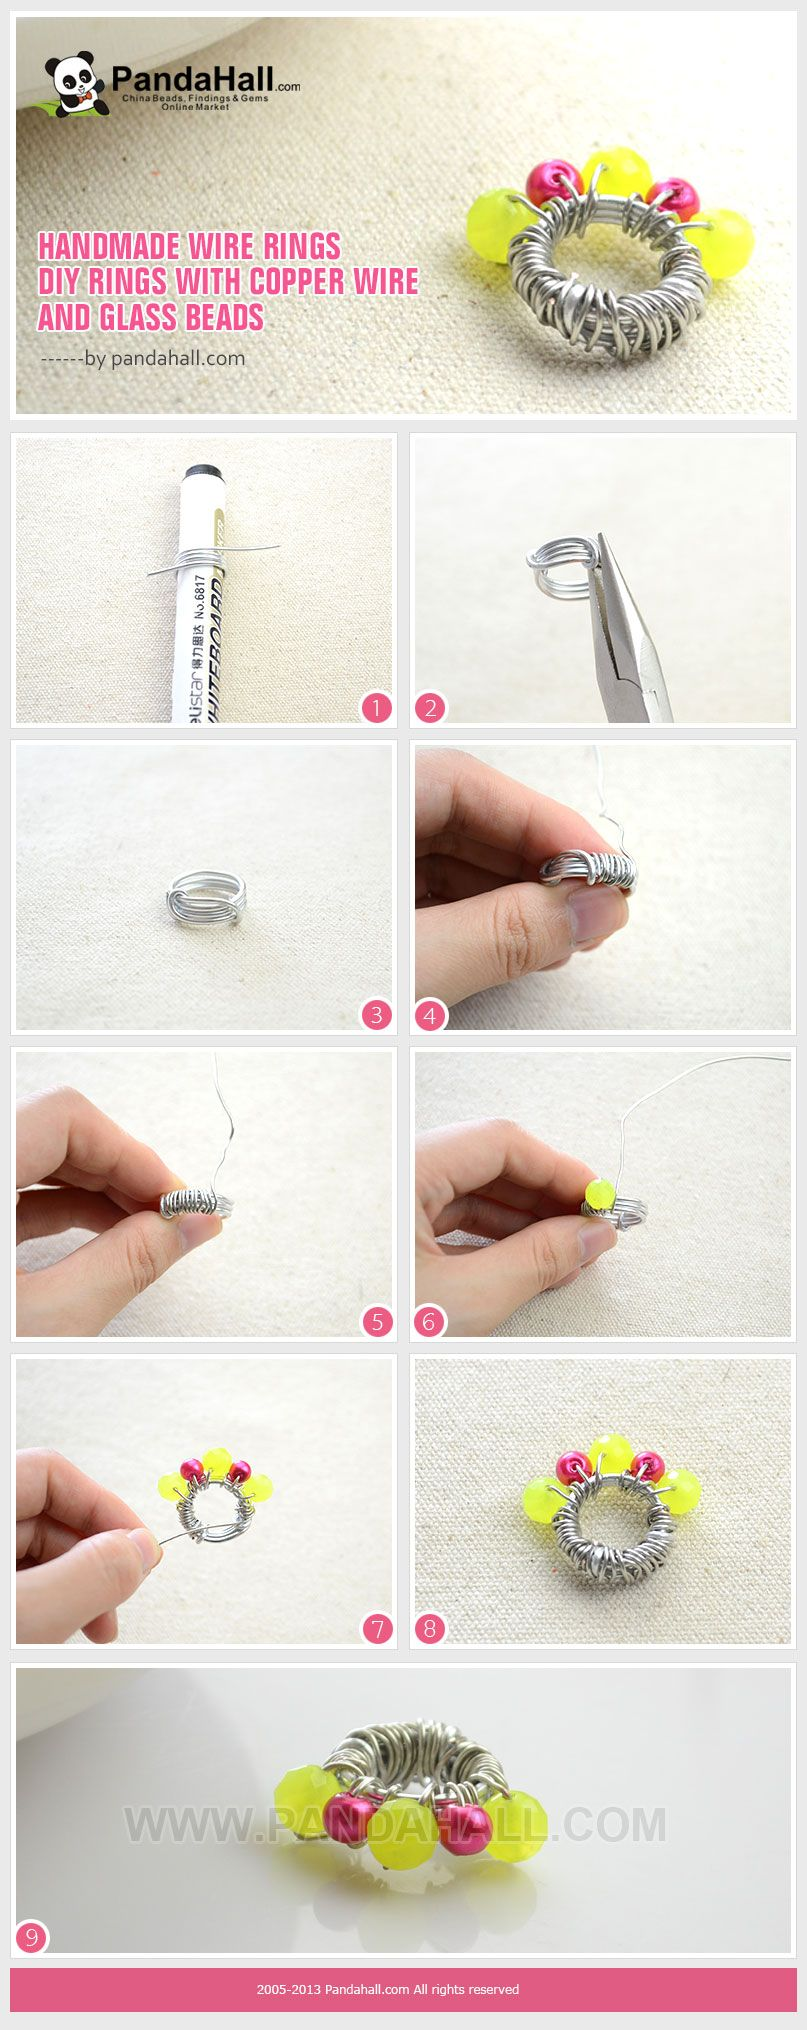 Handmade Wire Rings - DIY Rings with Copper Wire and Glass Beads ...